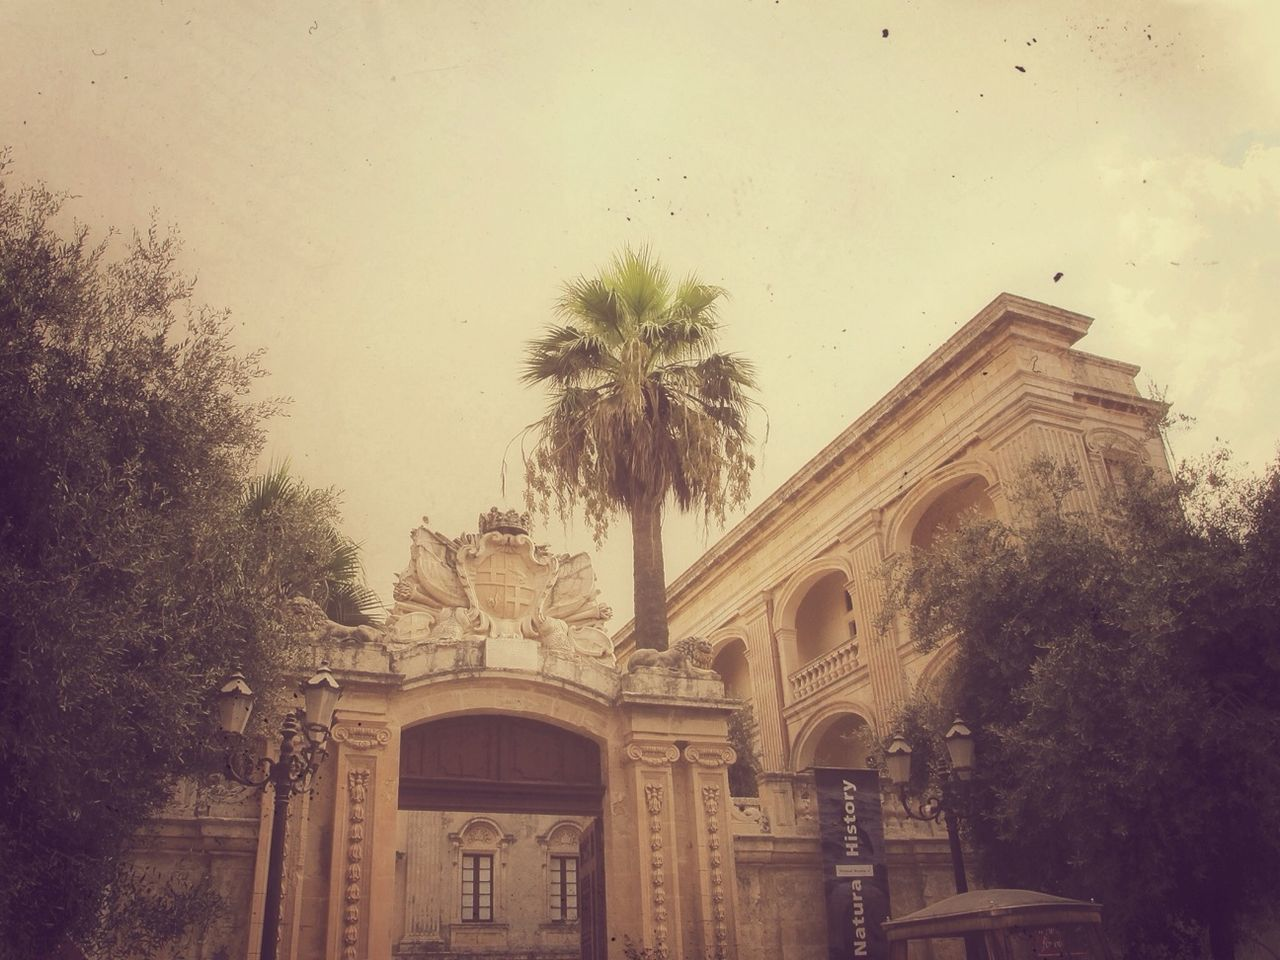 architecture, built structure, tree, no people, low angle view, sky, building exterior, palm tree, outdoors, day